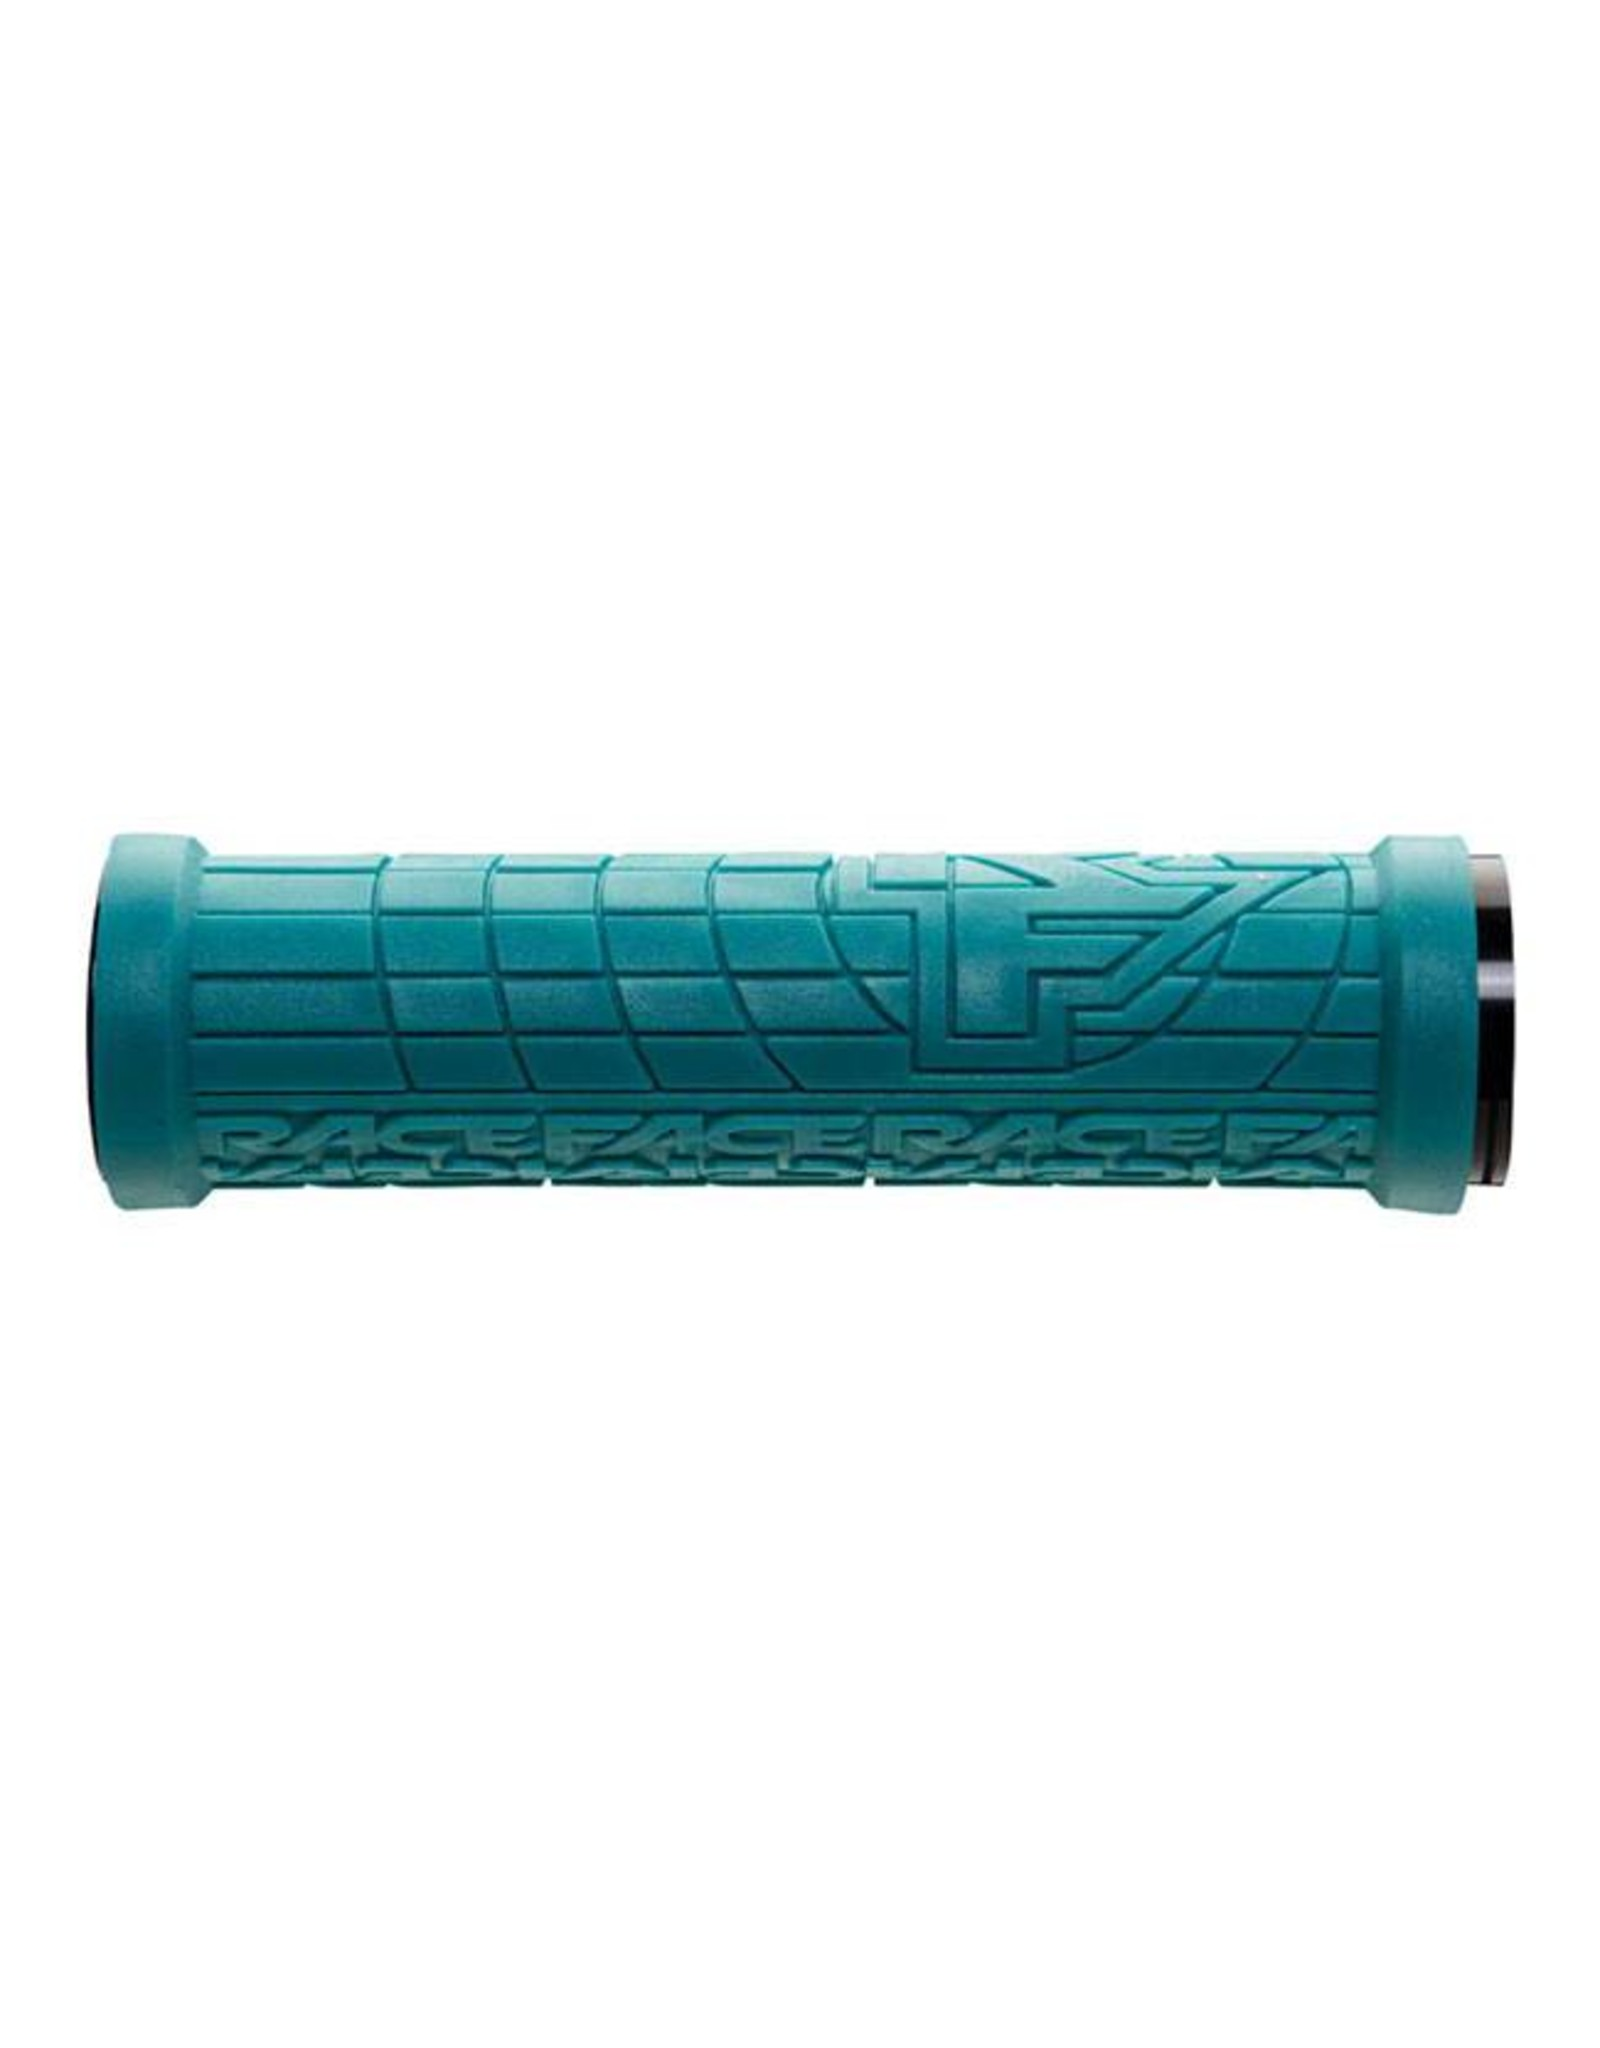 RaceFace RaceFace Grippler 30mm Lock-On Grip Turquoise